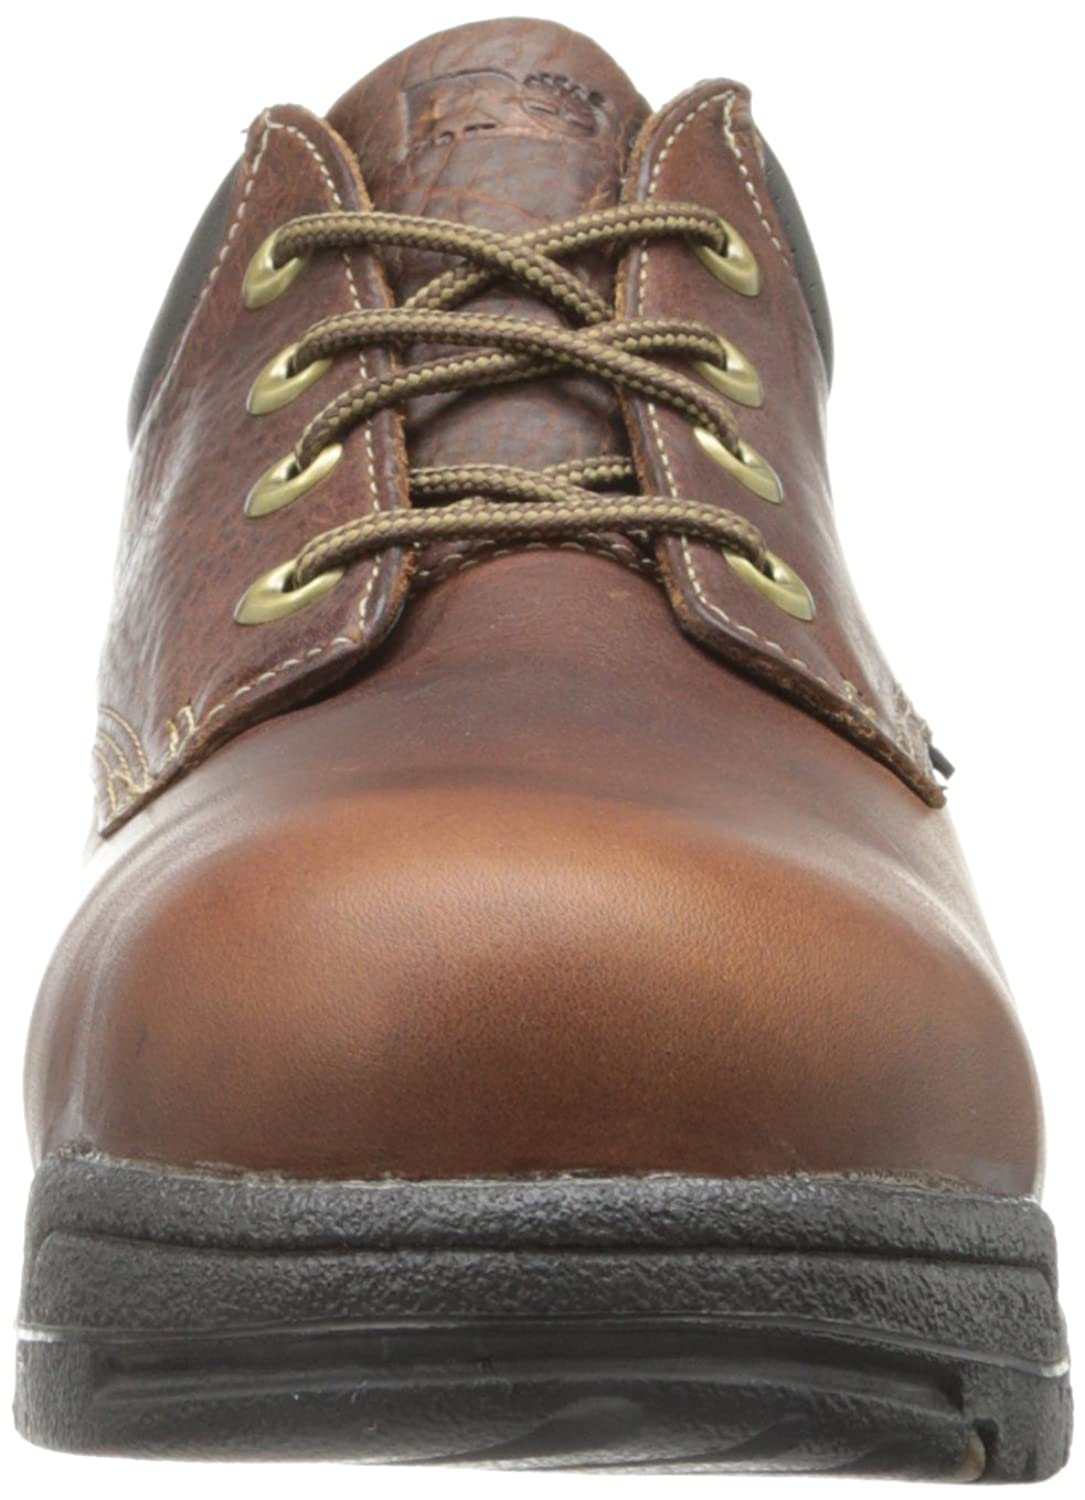 Timberland Zapatos De Seguridad Amazon 9HlQvl